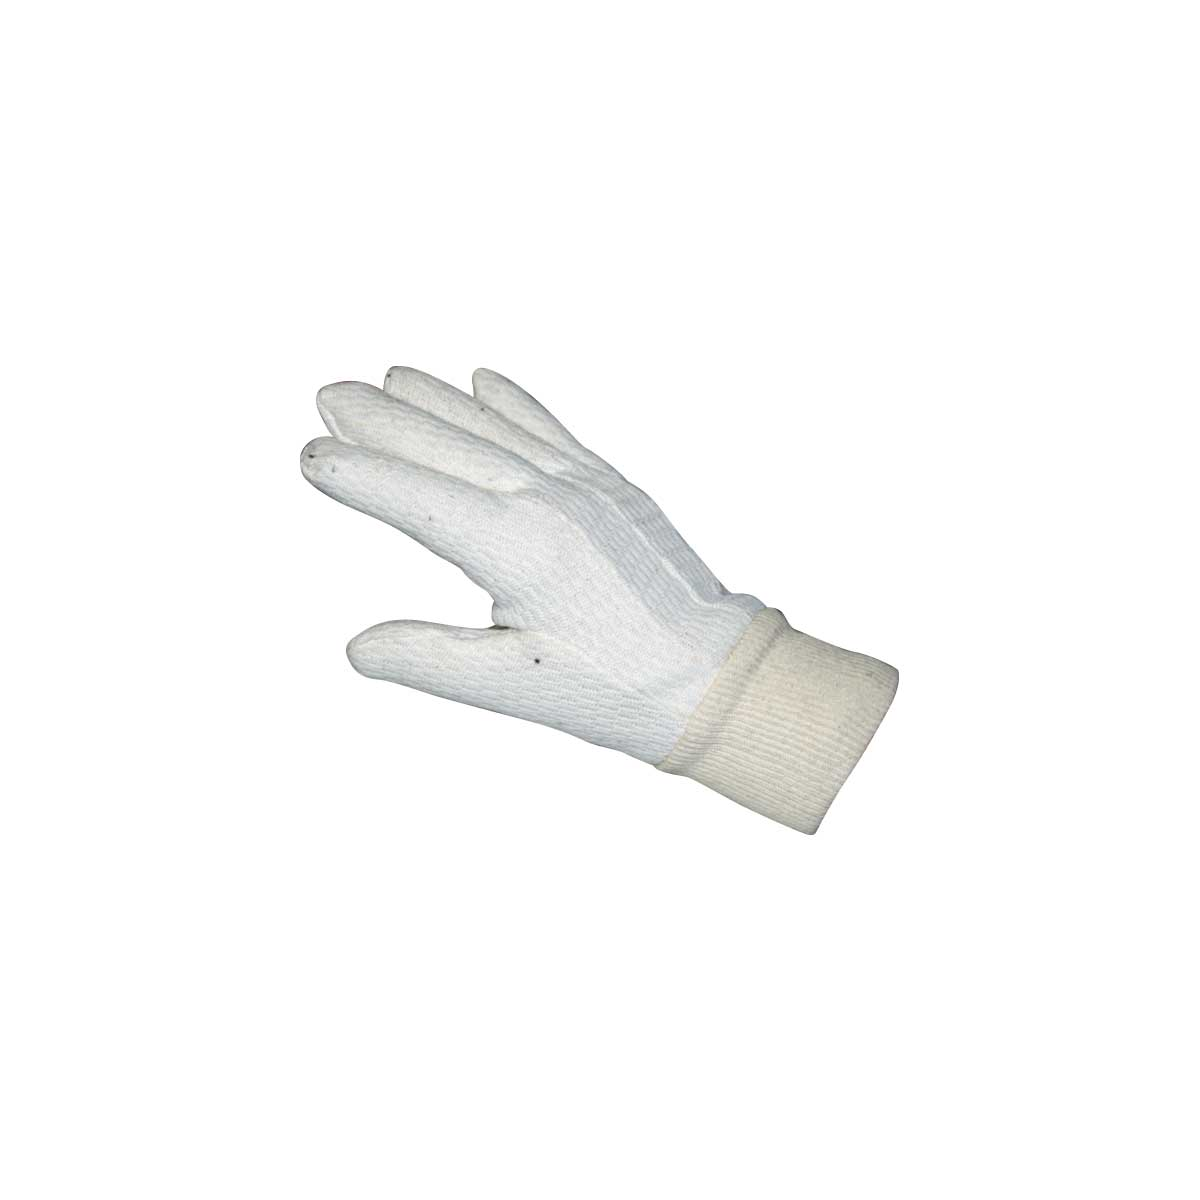 American Safety Thermal Weave Glove Liner - White weave with knit wrist, Excellent liner for Rubber Gloves.